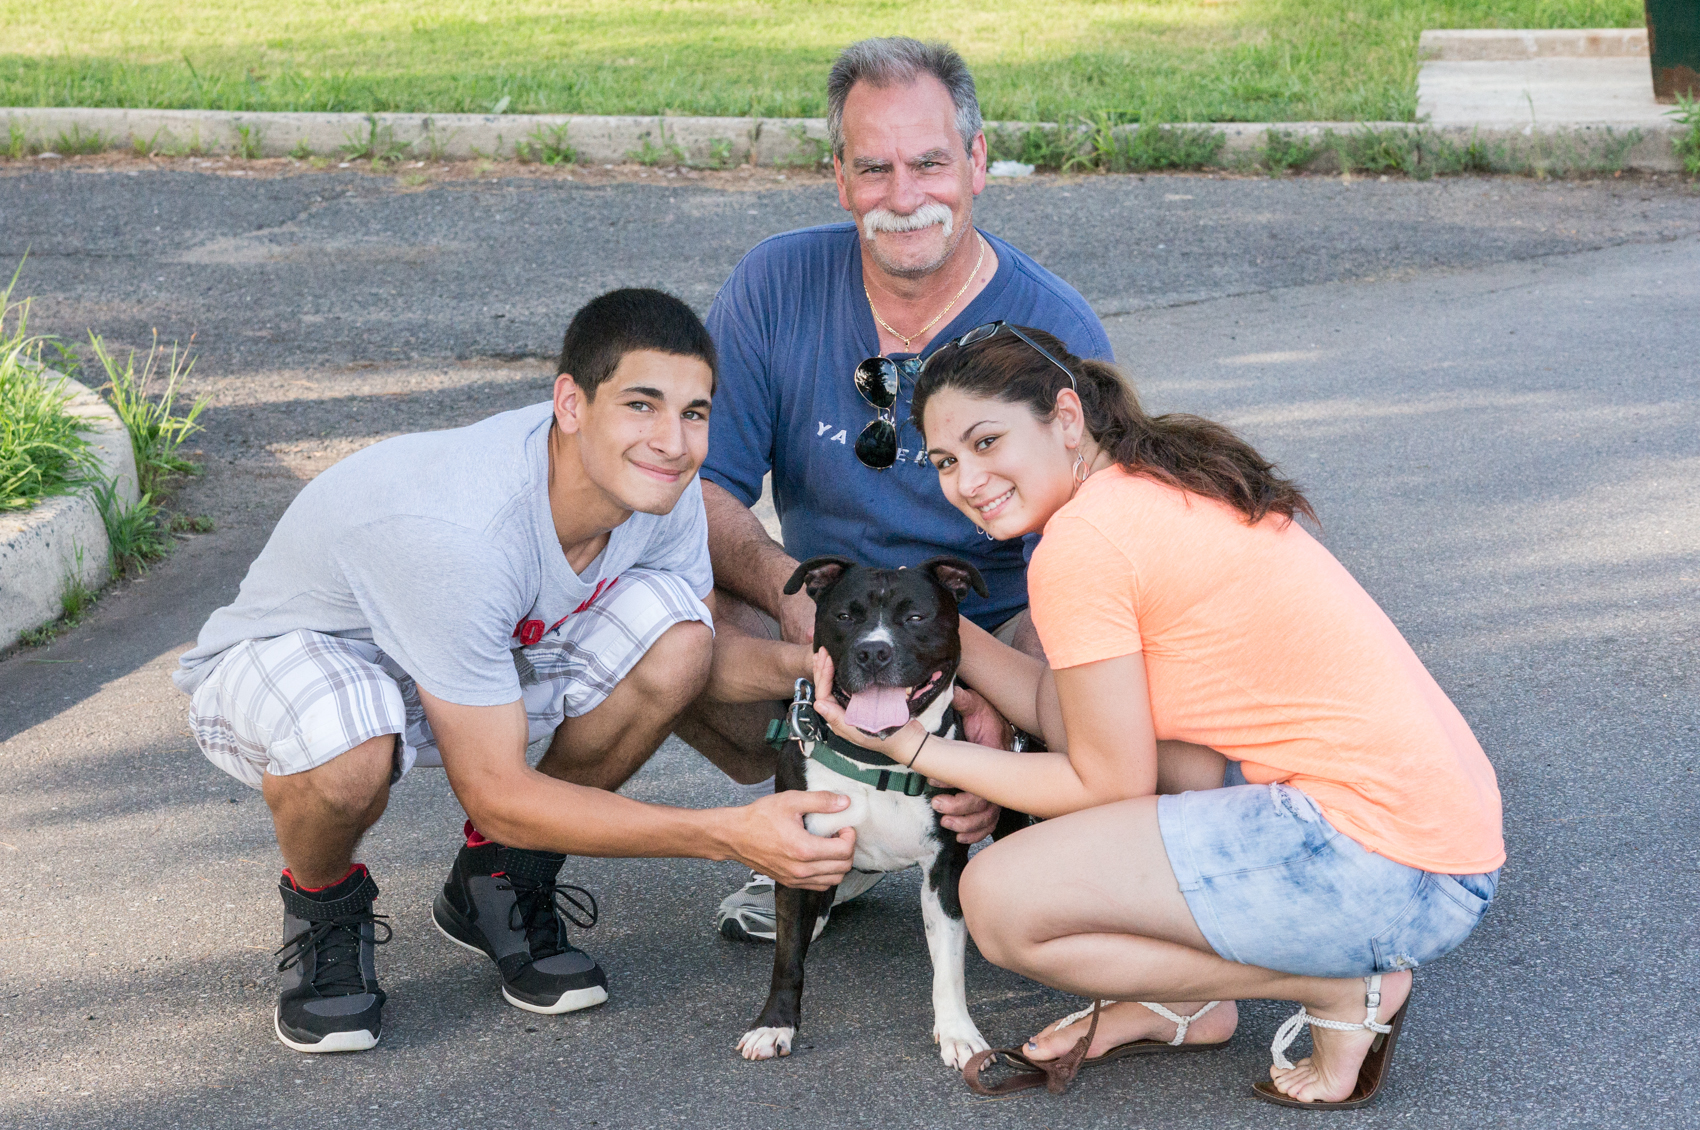 Danny with his new Family